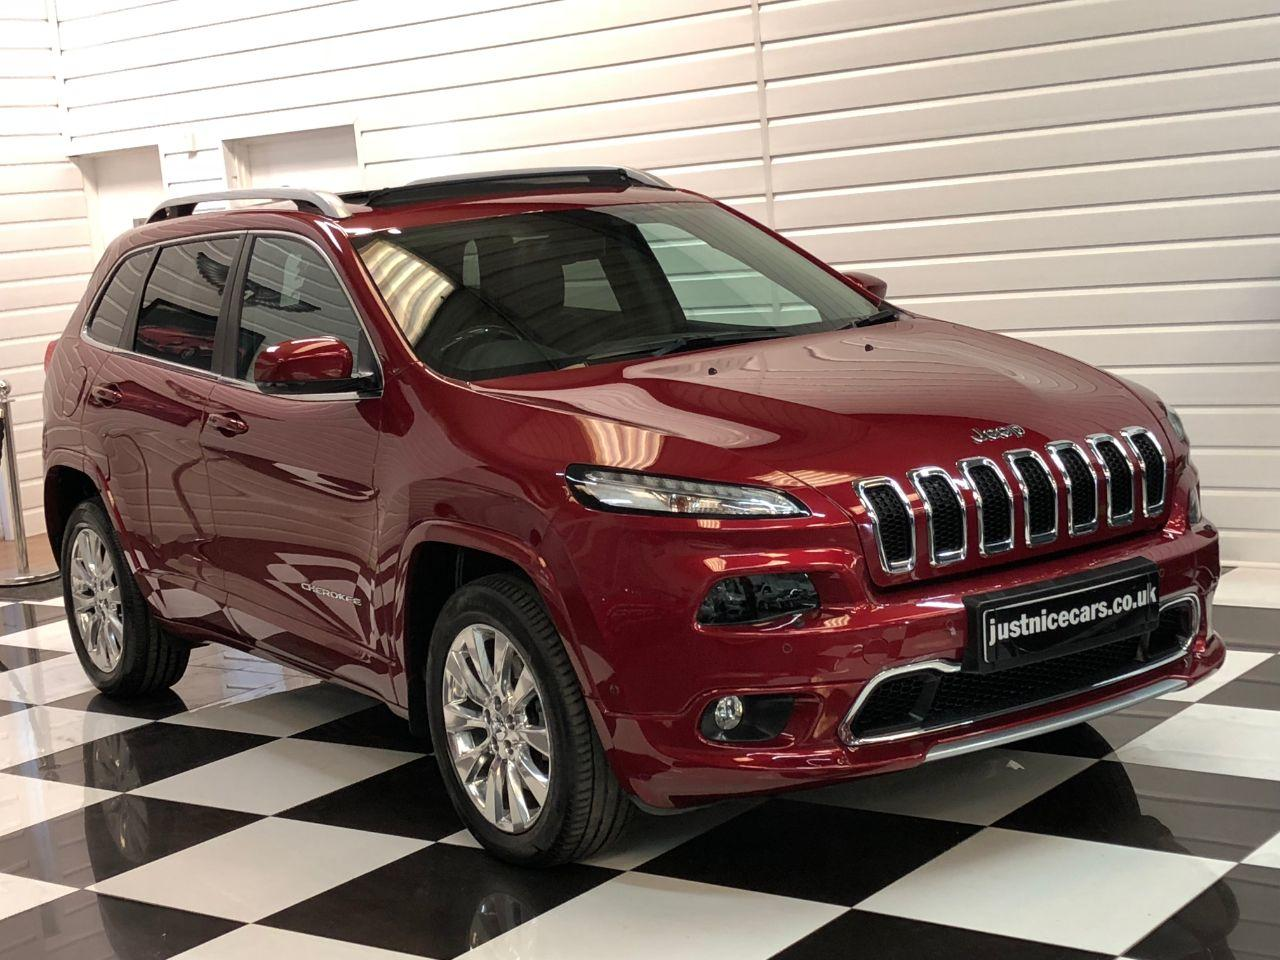 Jeep Cherokee 2.2 Multijet 200BHP Overland 5dr Auto Estate Diesel Deep Cherry Red Metallic